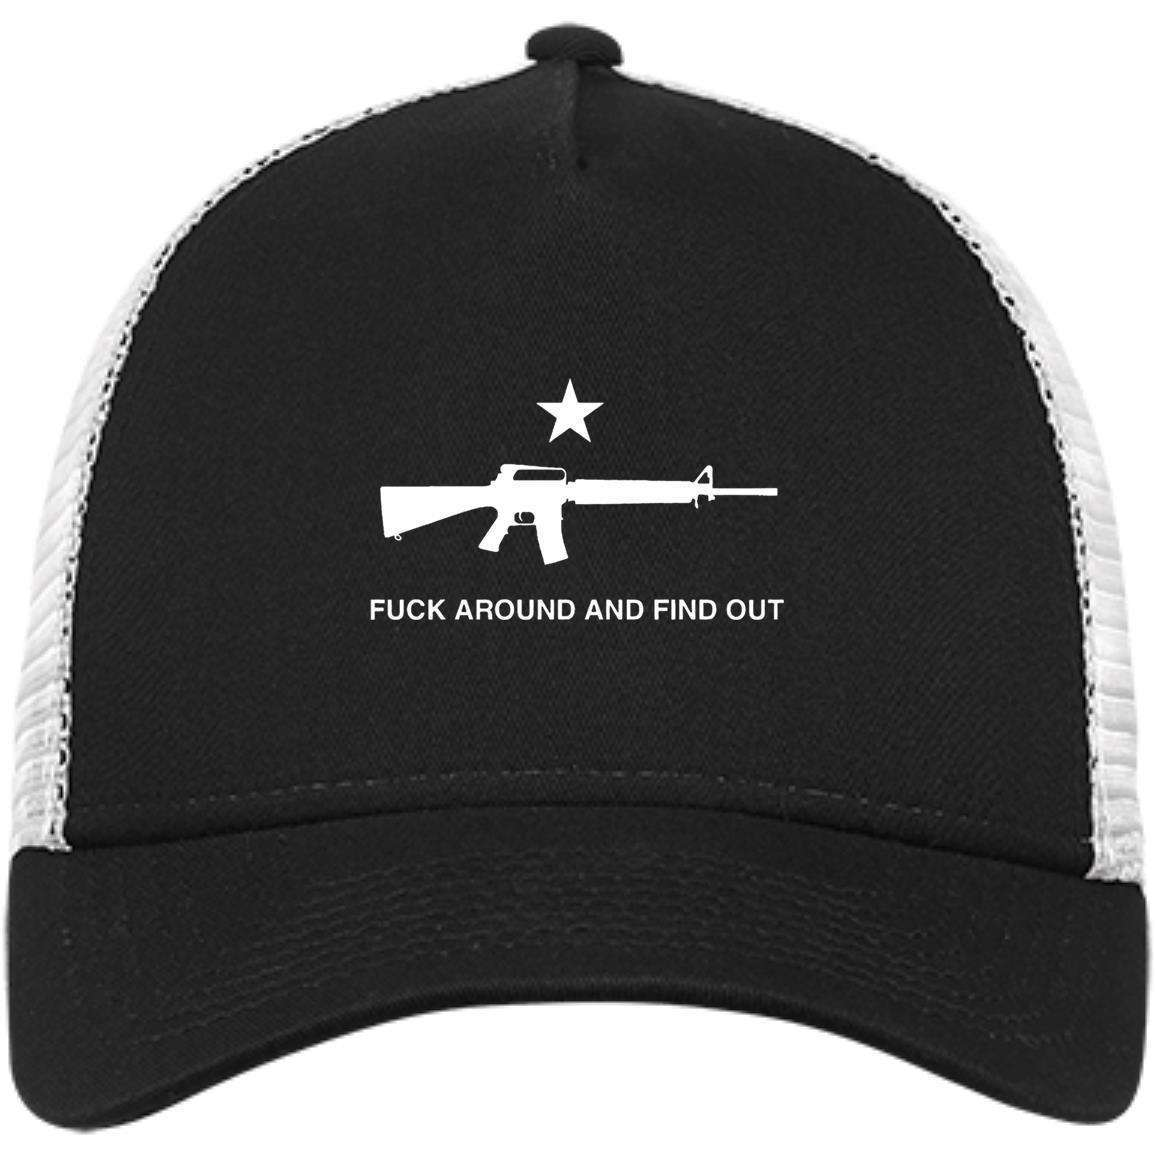 Fuck Around and Find Out M16 Trucker Cap